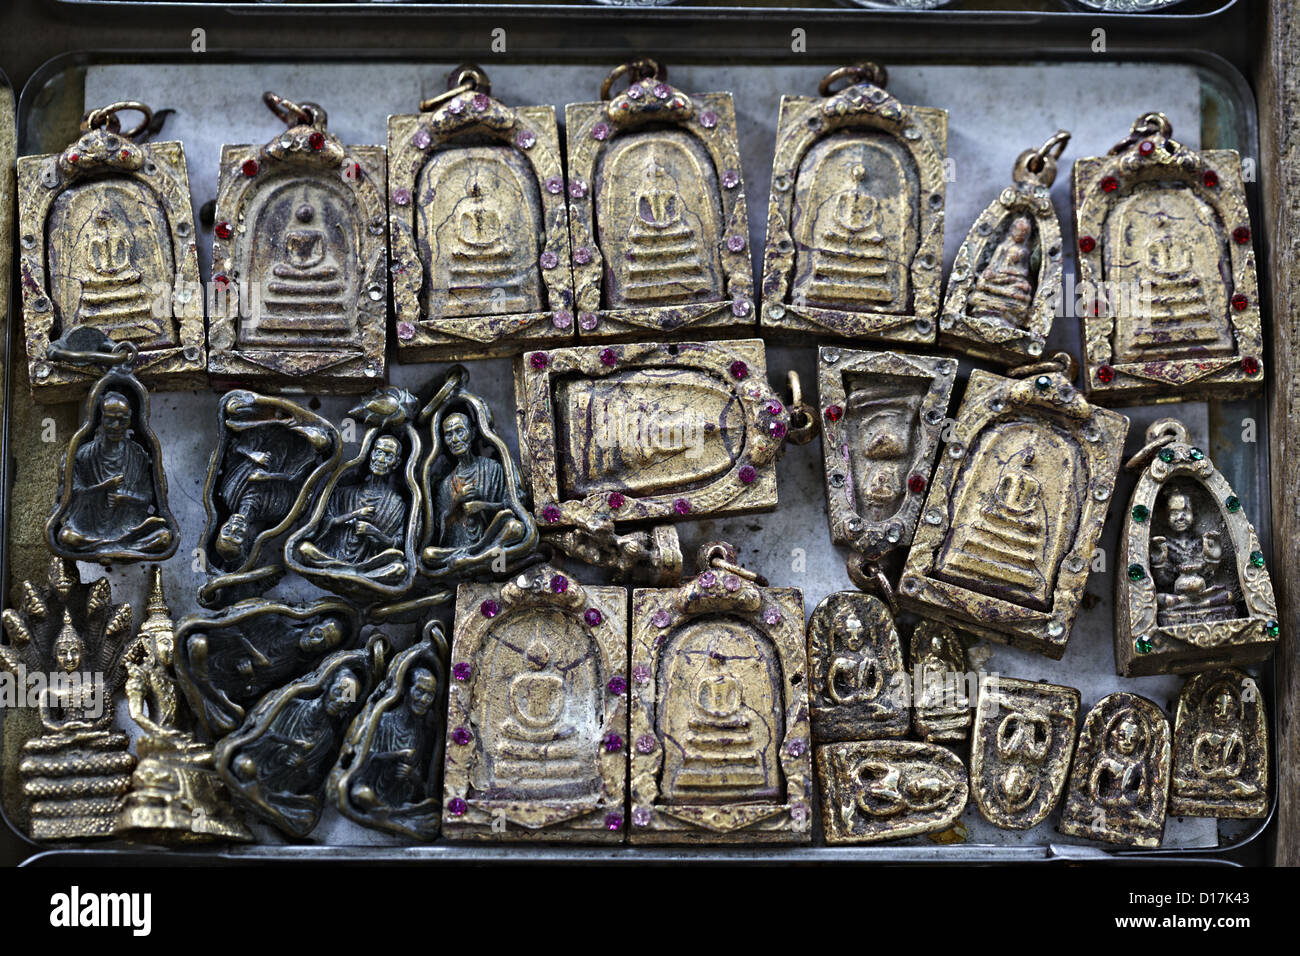 Religious relics sold by street vendor - Stock Image